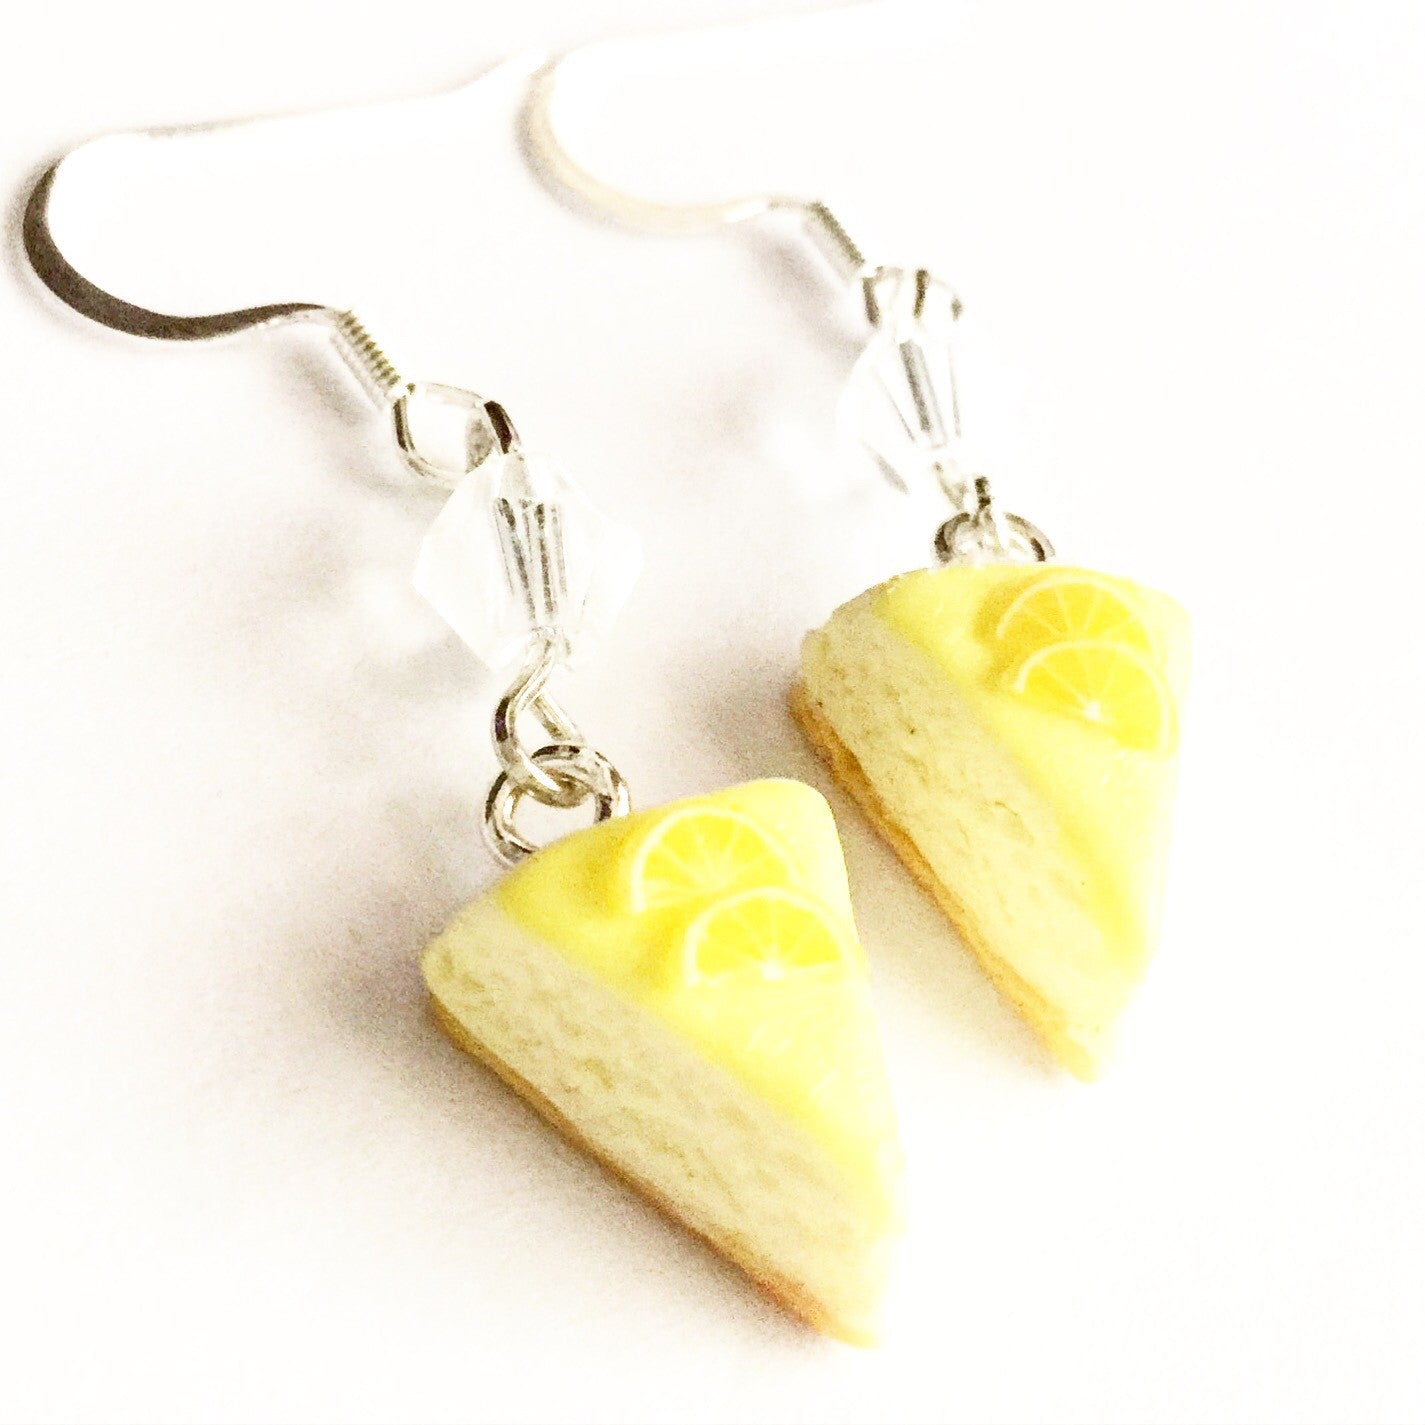 Lemon Cheesecake Dangle Earrings - Jillicious charms and accessories - 2